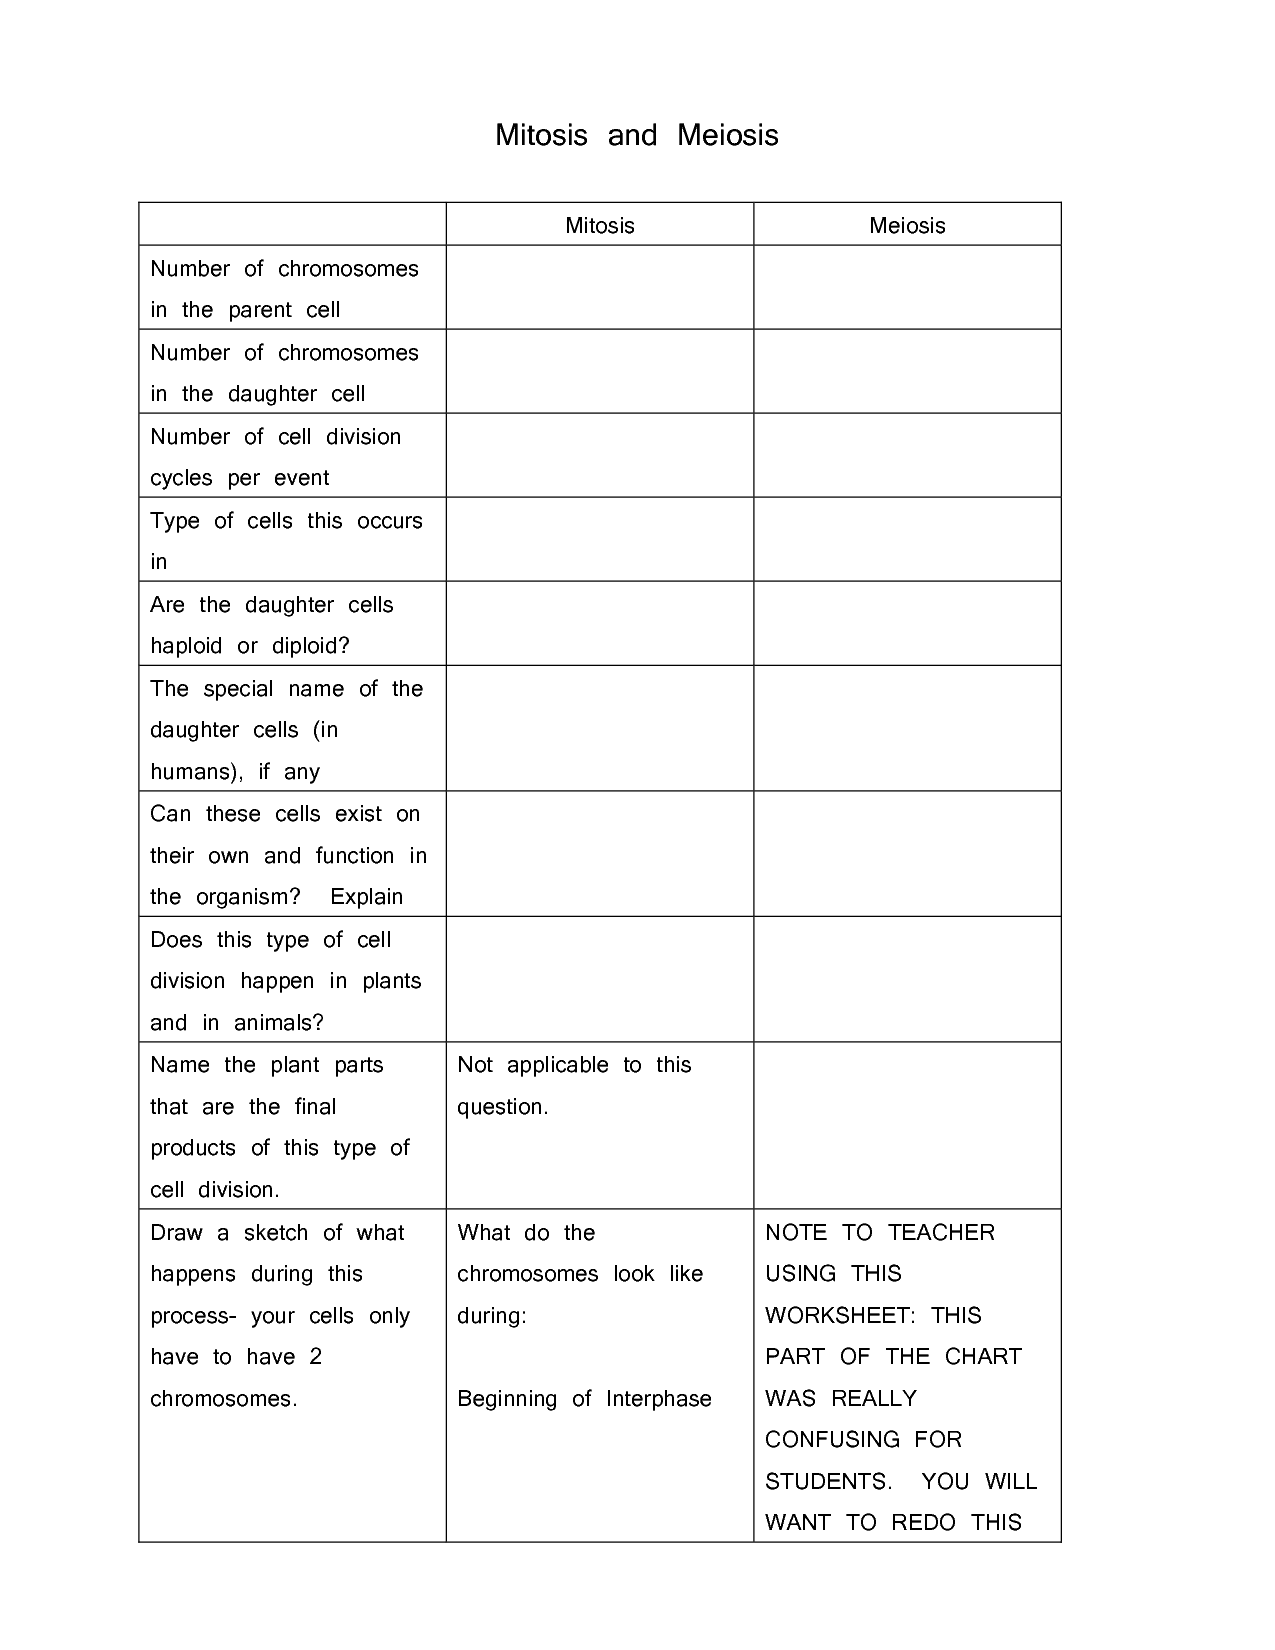 Mitosis And Meiosis Worksheet High School